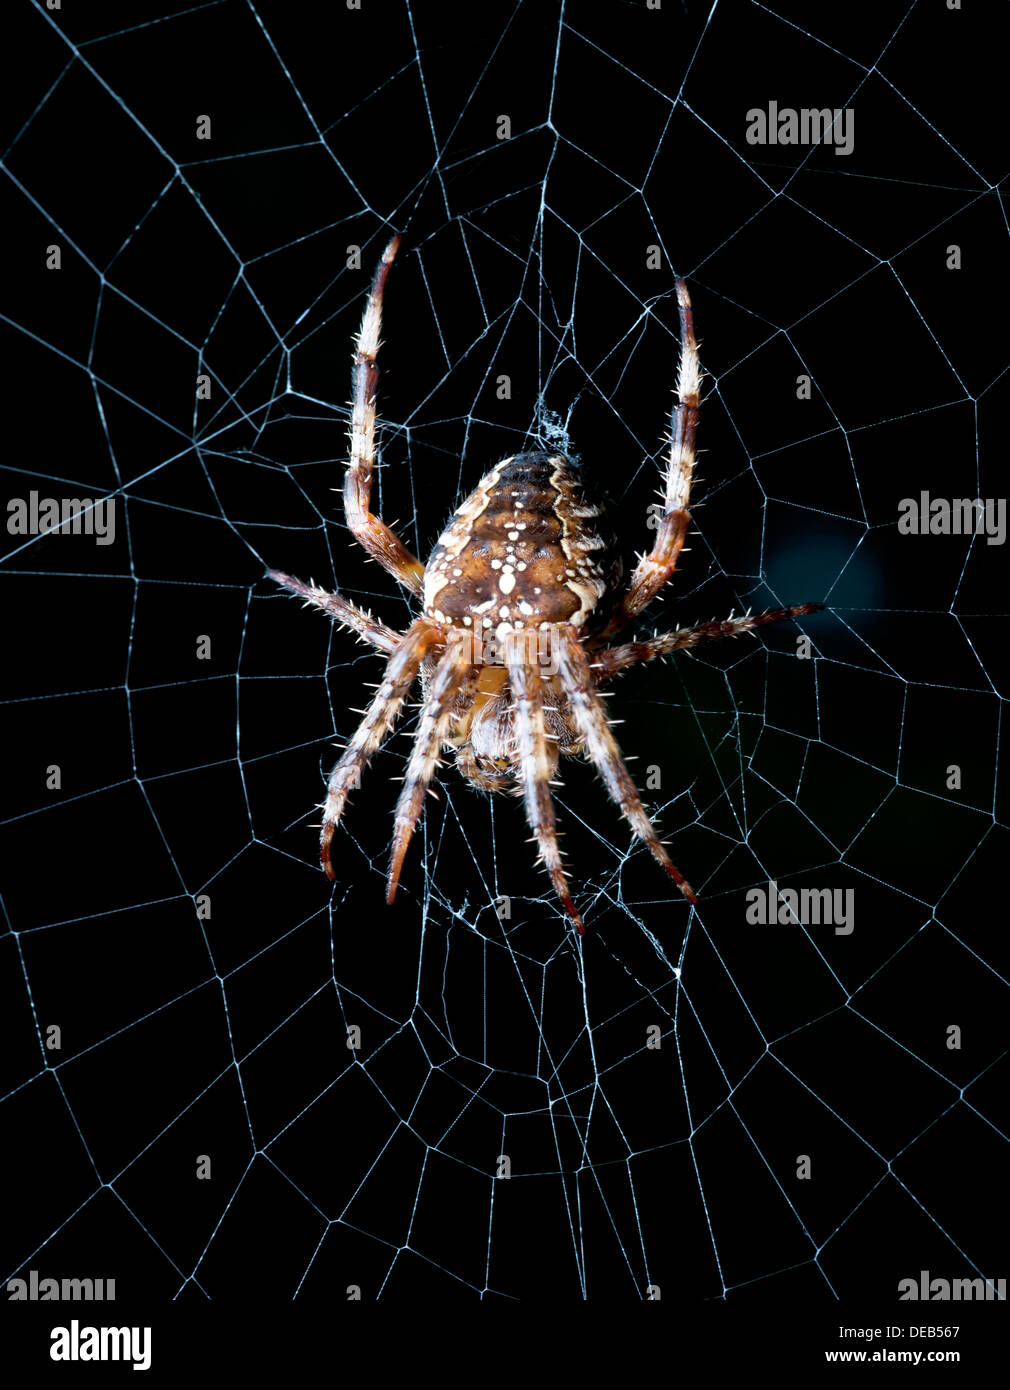 Spider - Orb weaver spider in the net - Stock Image